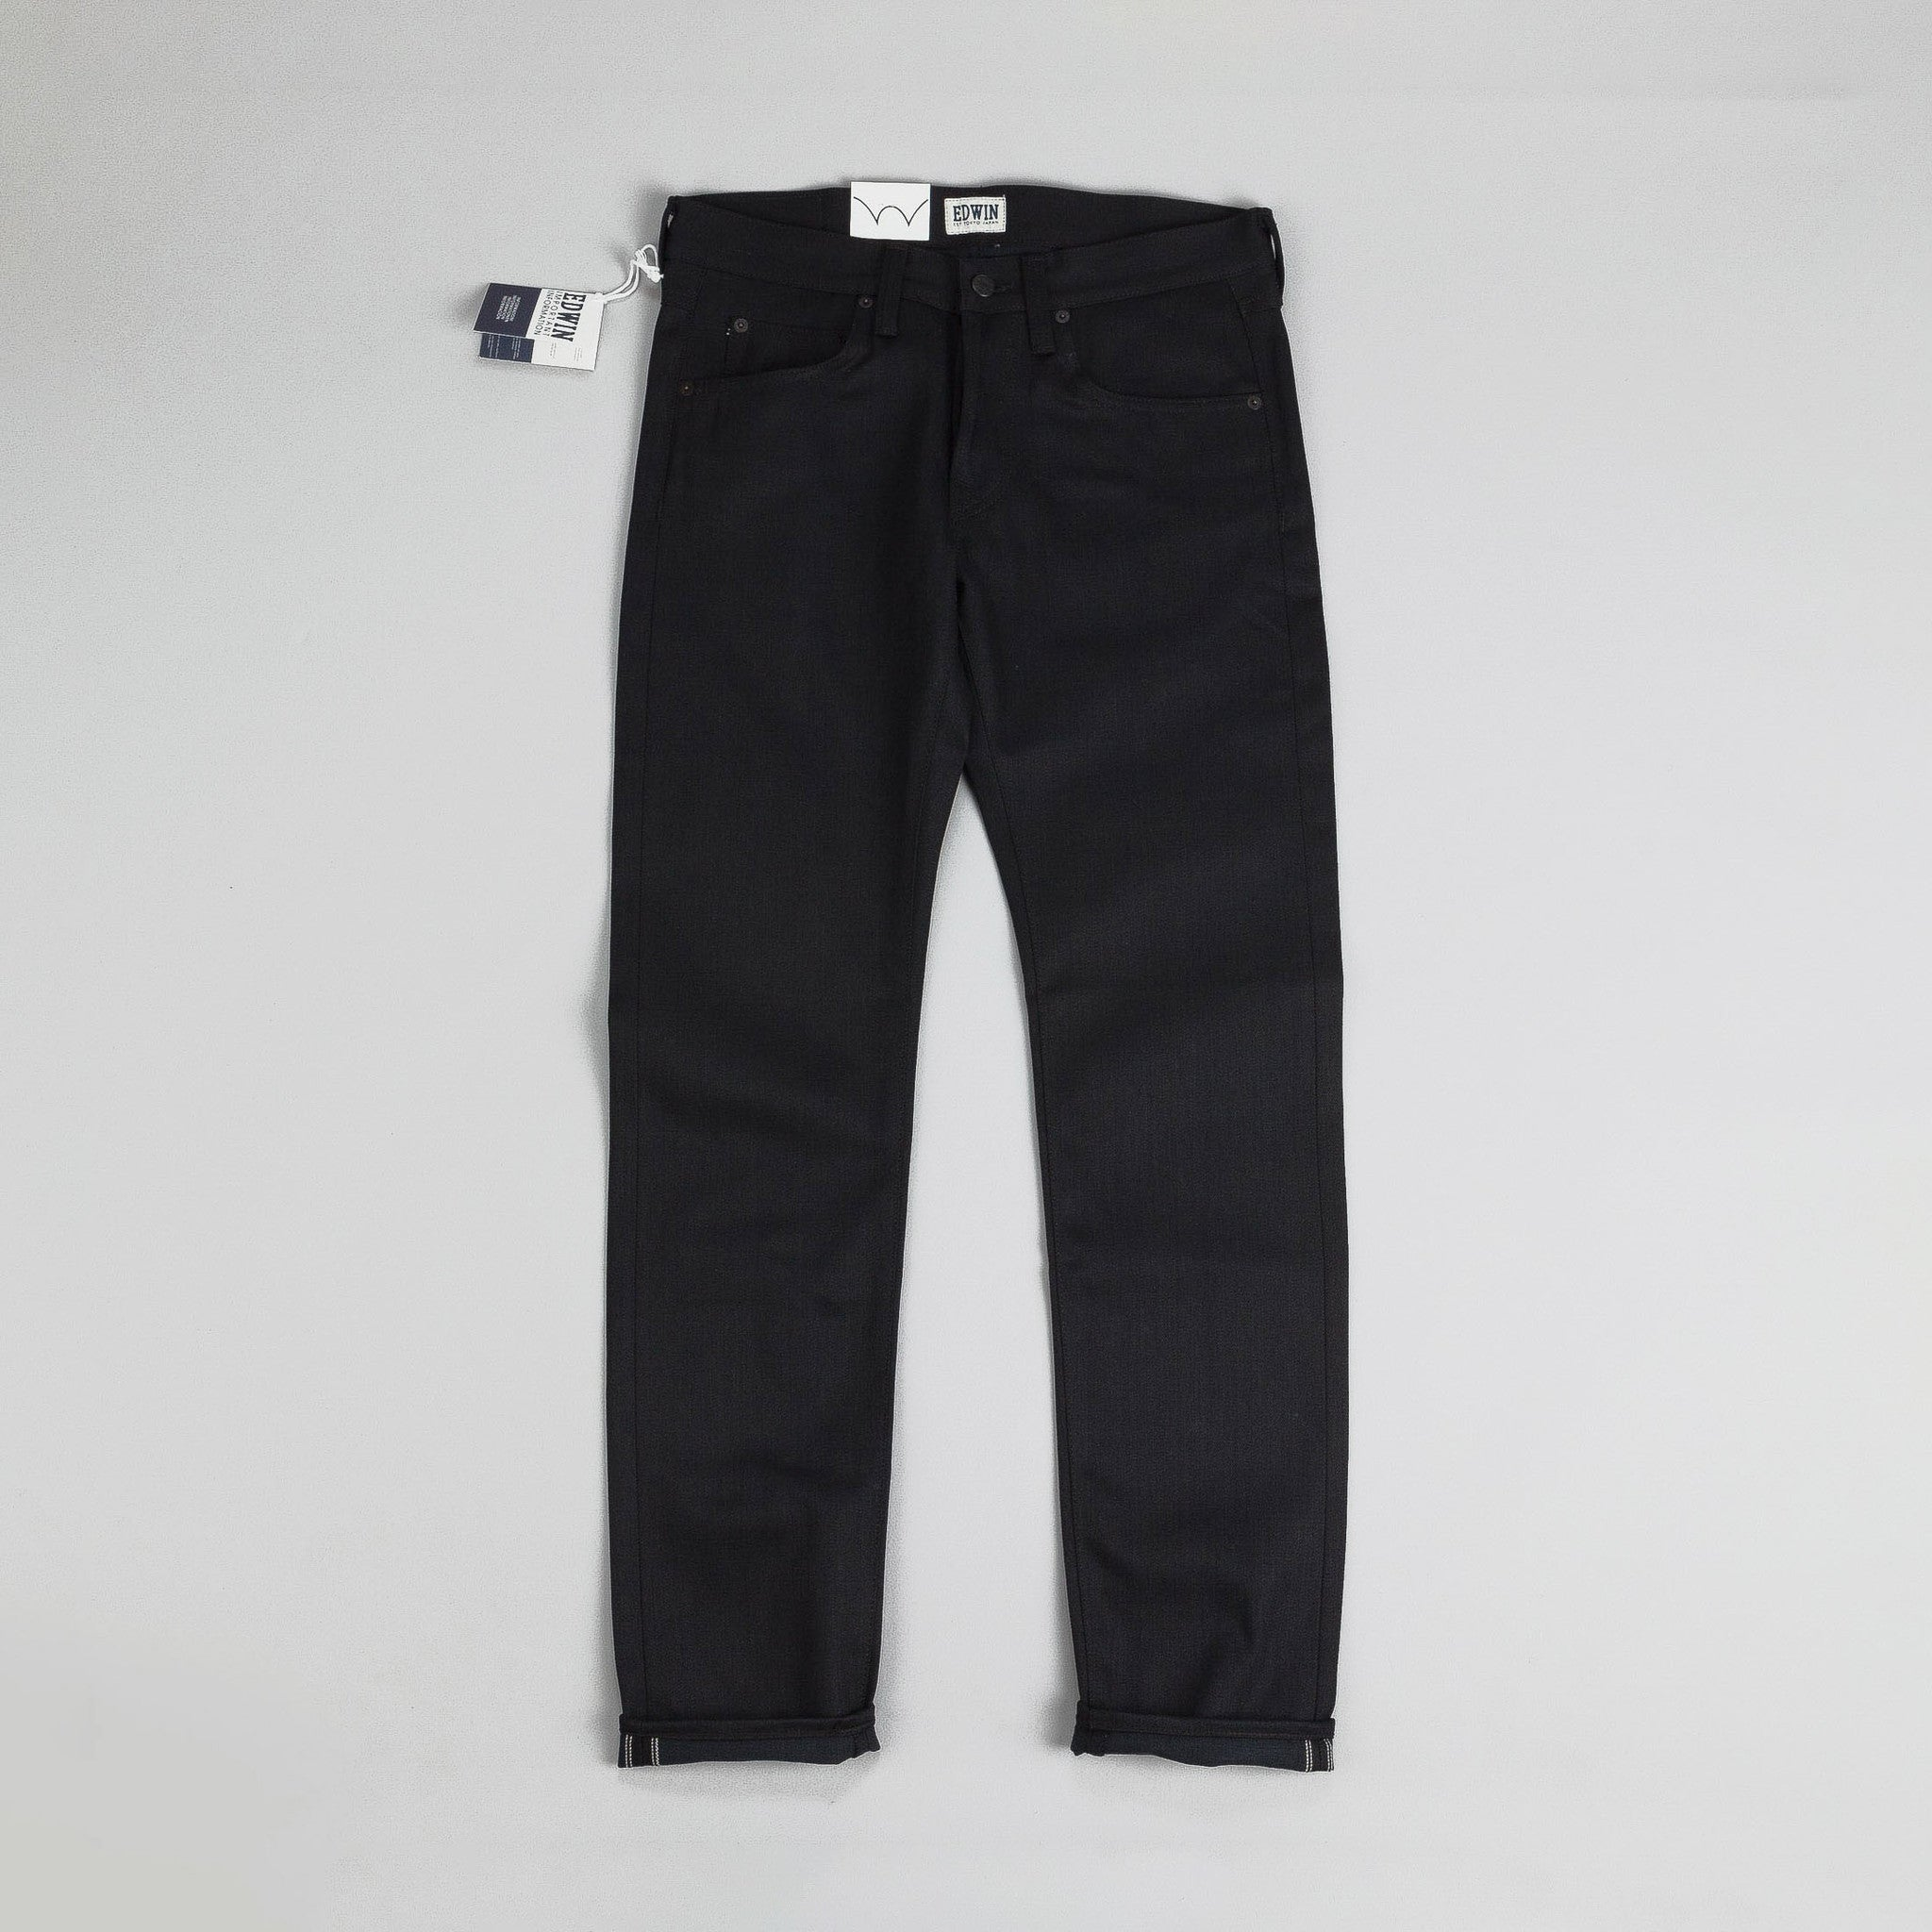 Edwin ED-55 White Listed Selvage Jeans Black Unwashed